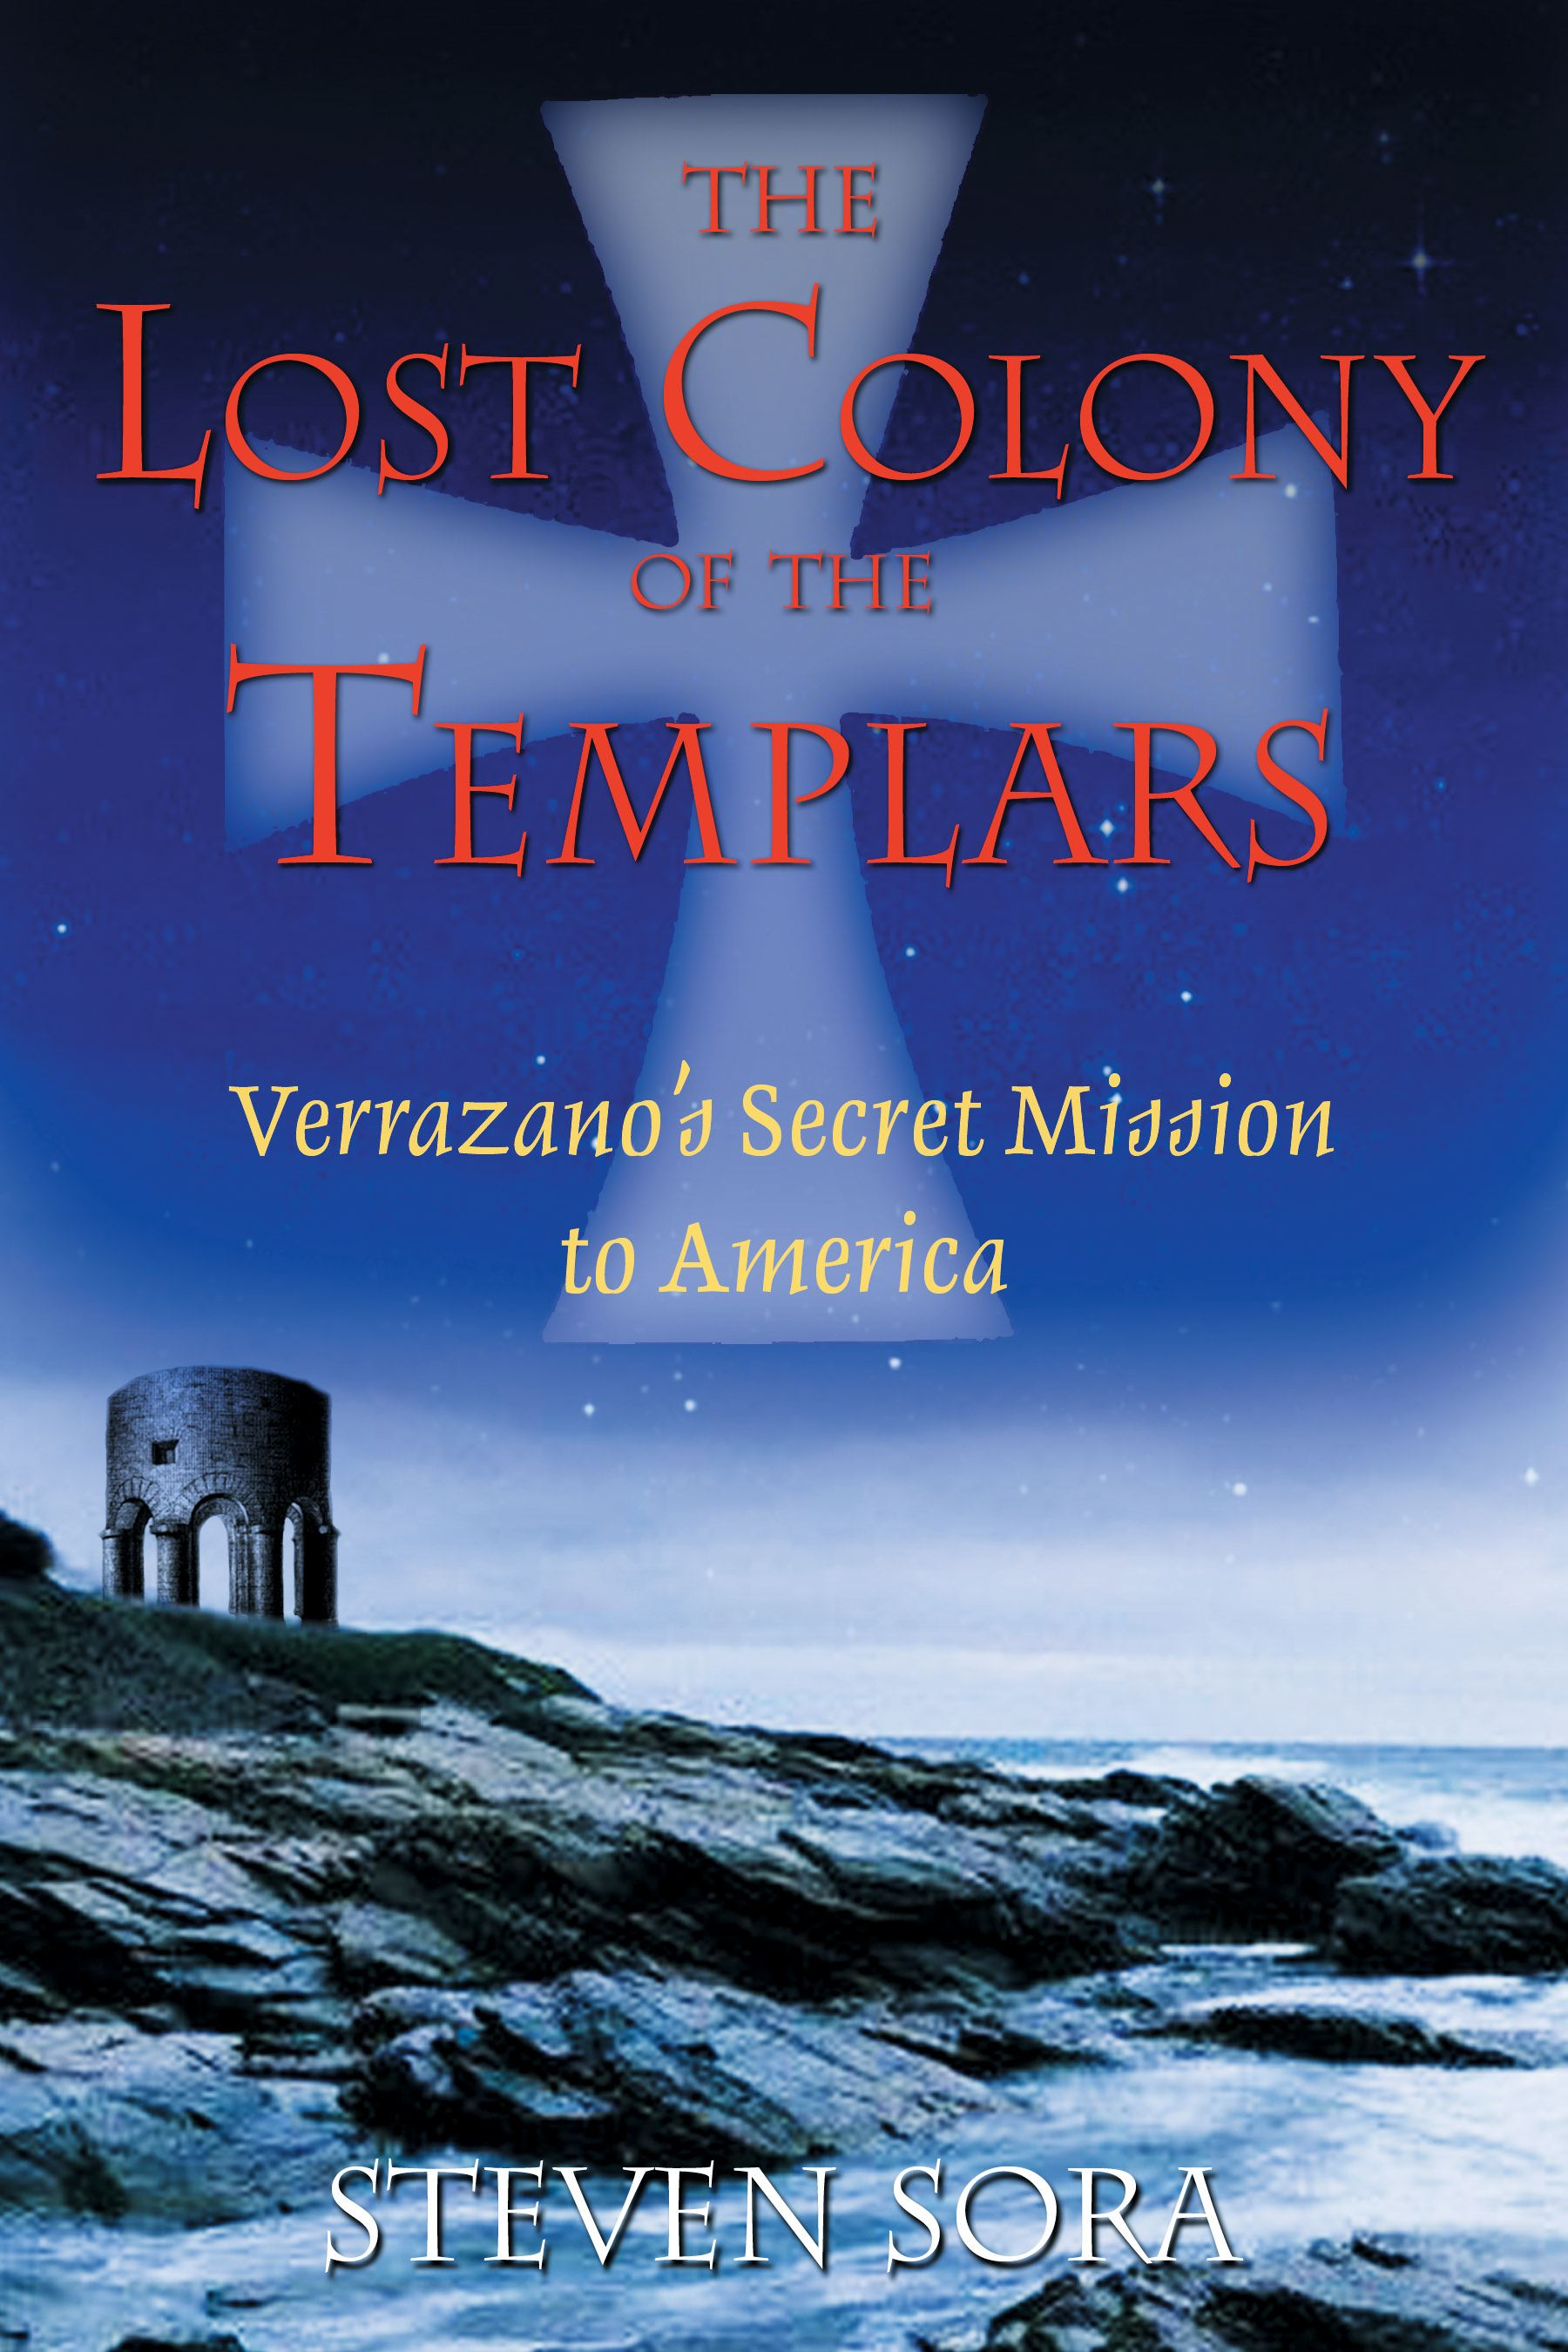 The lost colony of the templars 9781594770197 hr